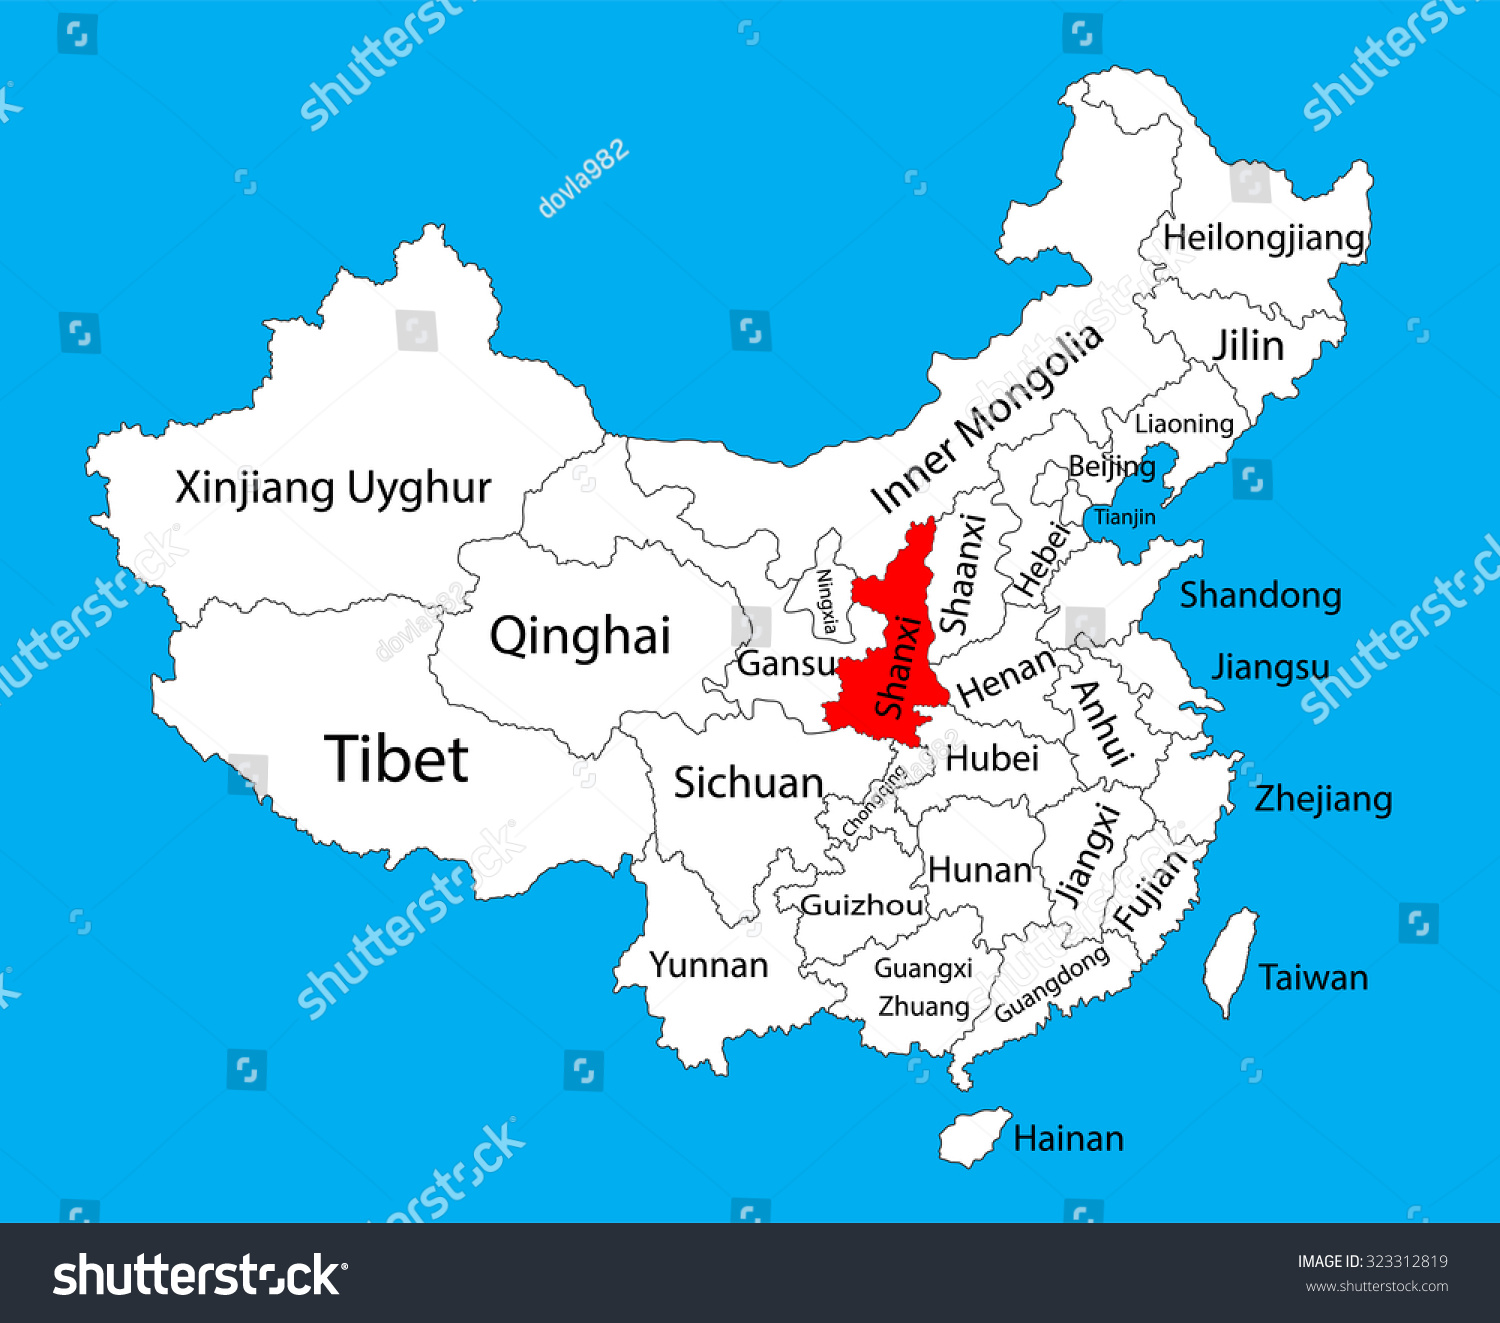 Shaanxi province map china vector map vector de stock323312819 shaanxi province map china vector map illustration isolated on background editable china map vector gumiabroncs Images